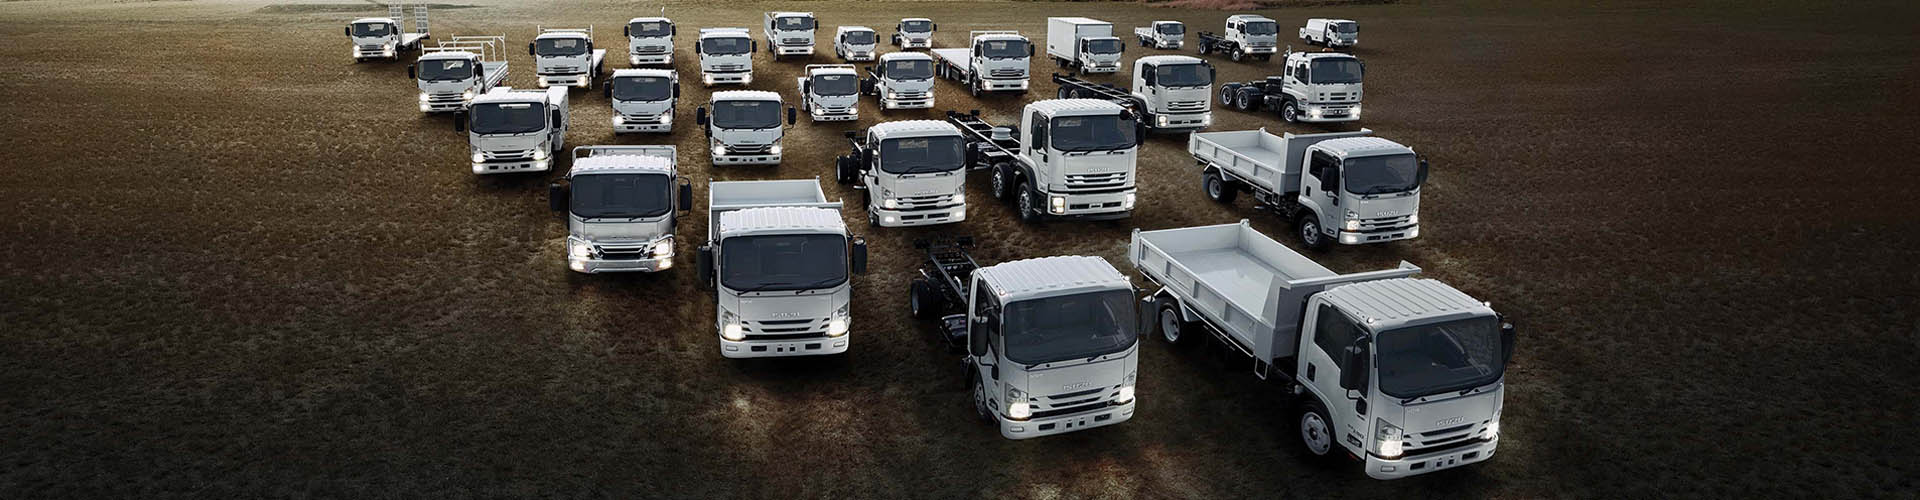 Isuzu Trucks Fleet